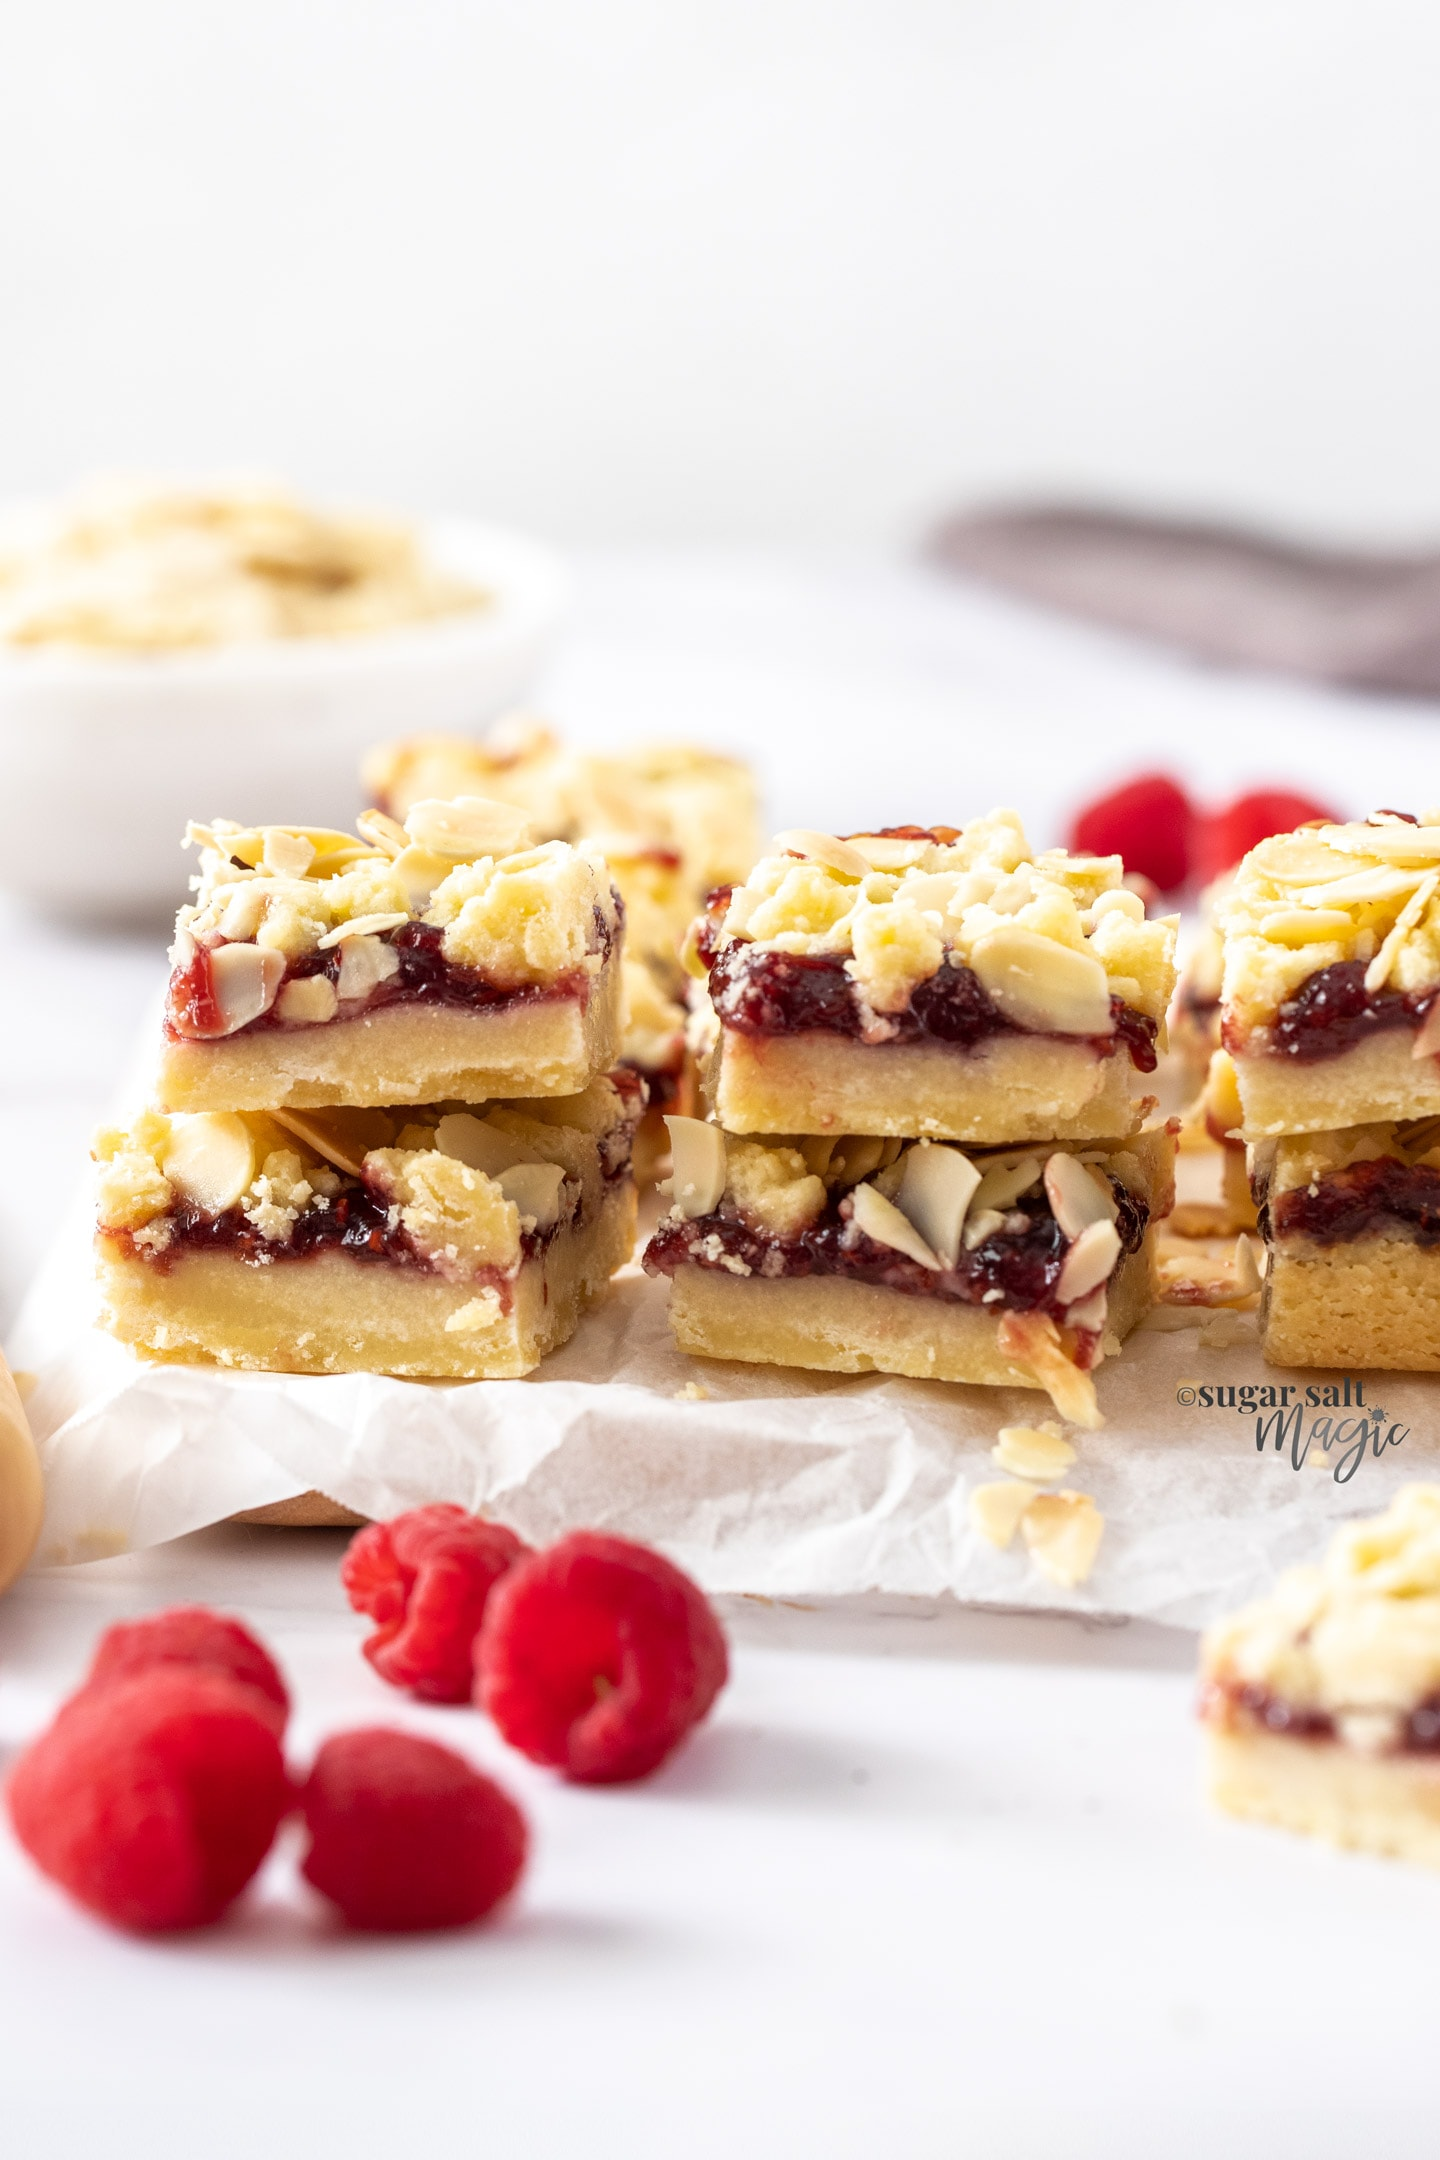 Stacks of shortbread bars, filled with jam.